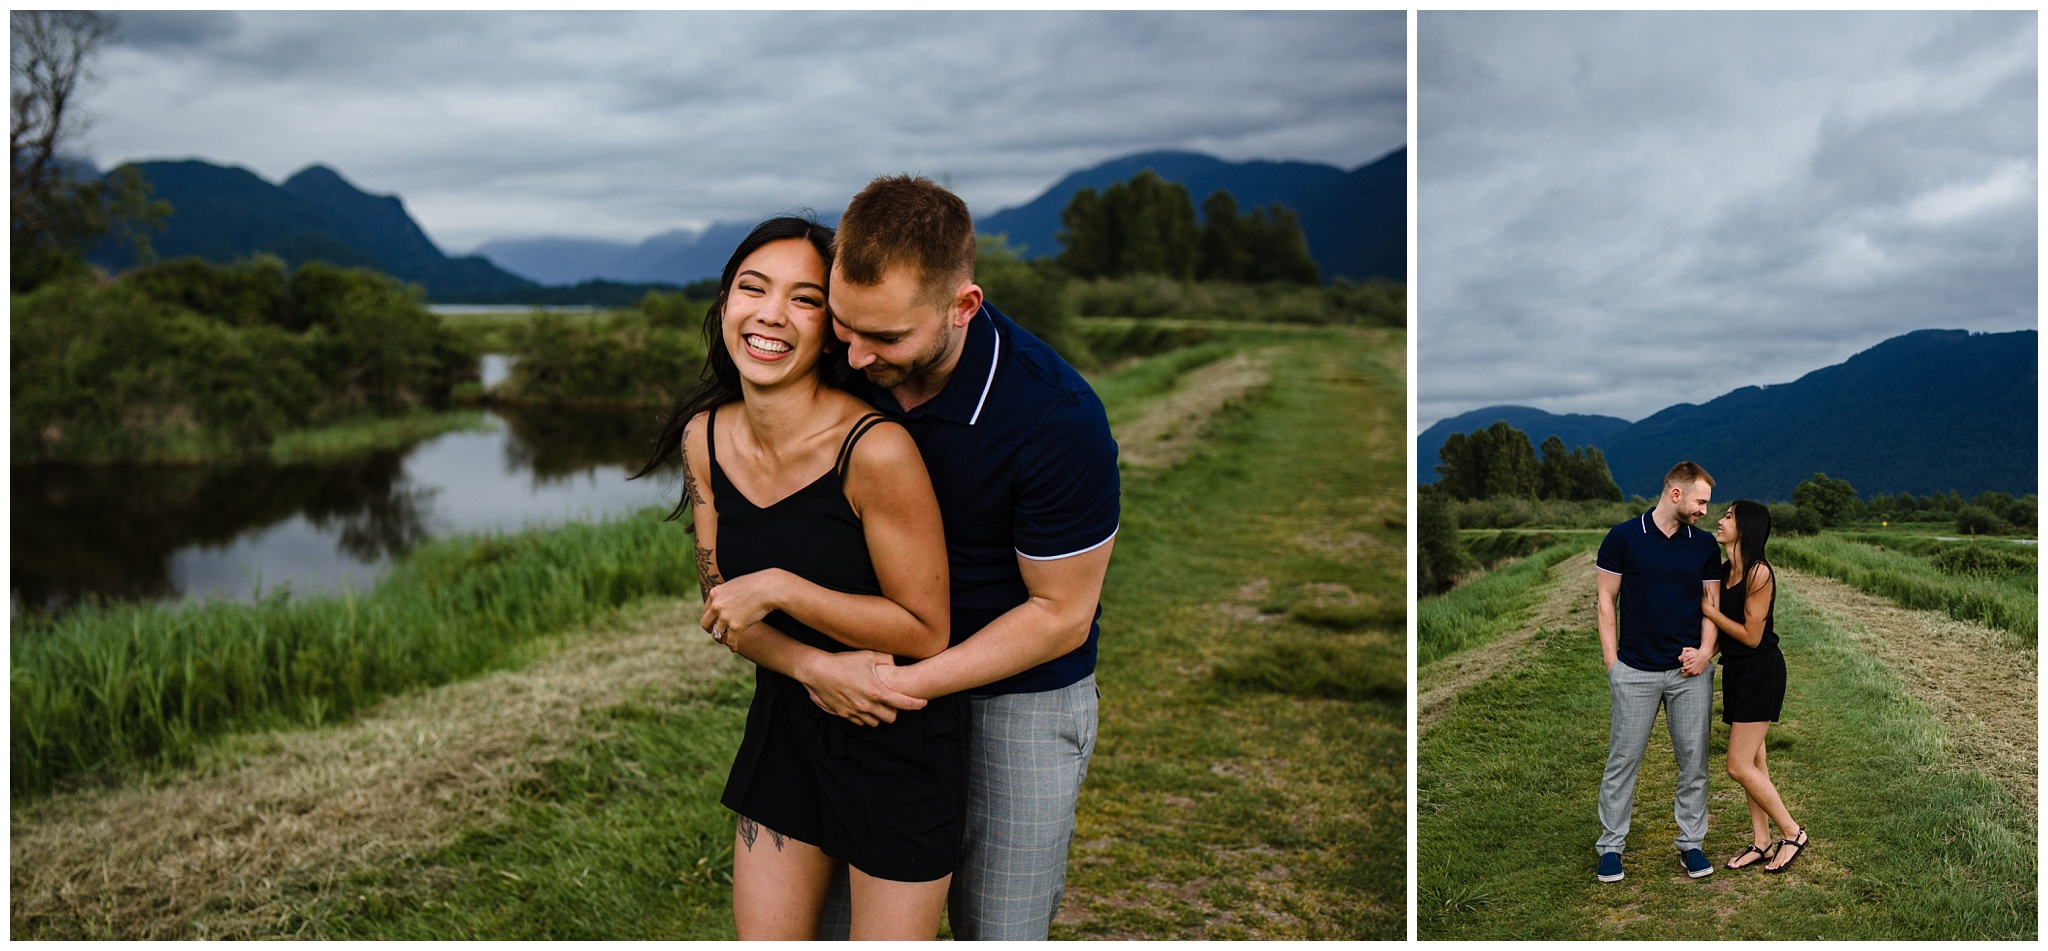 Pitt Lake Engagement Photos Maple Ridge Candid Fun Romantic Couples Photography_0014.jpg